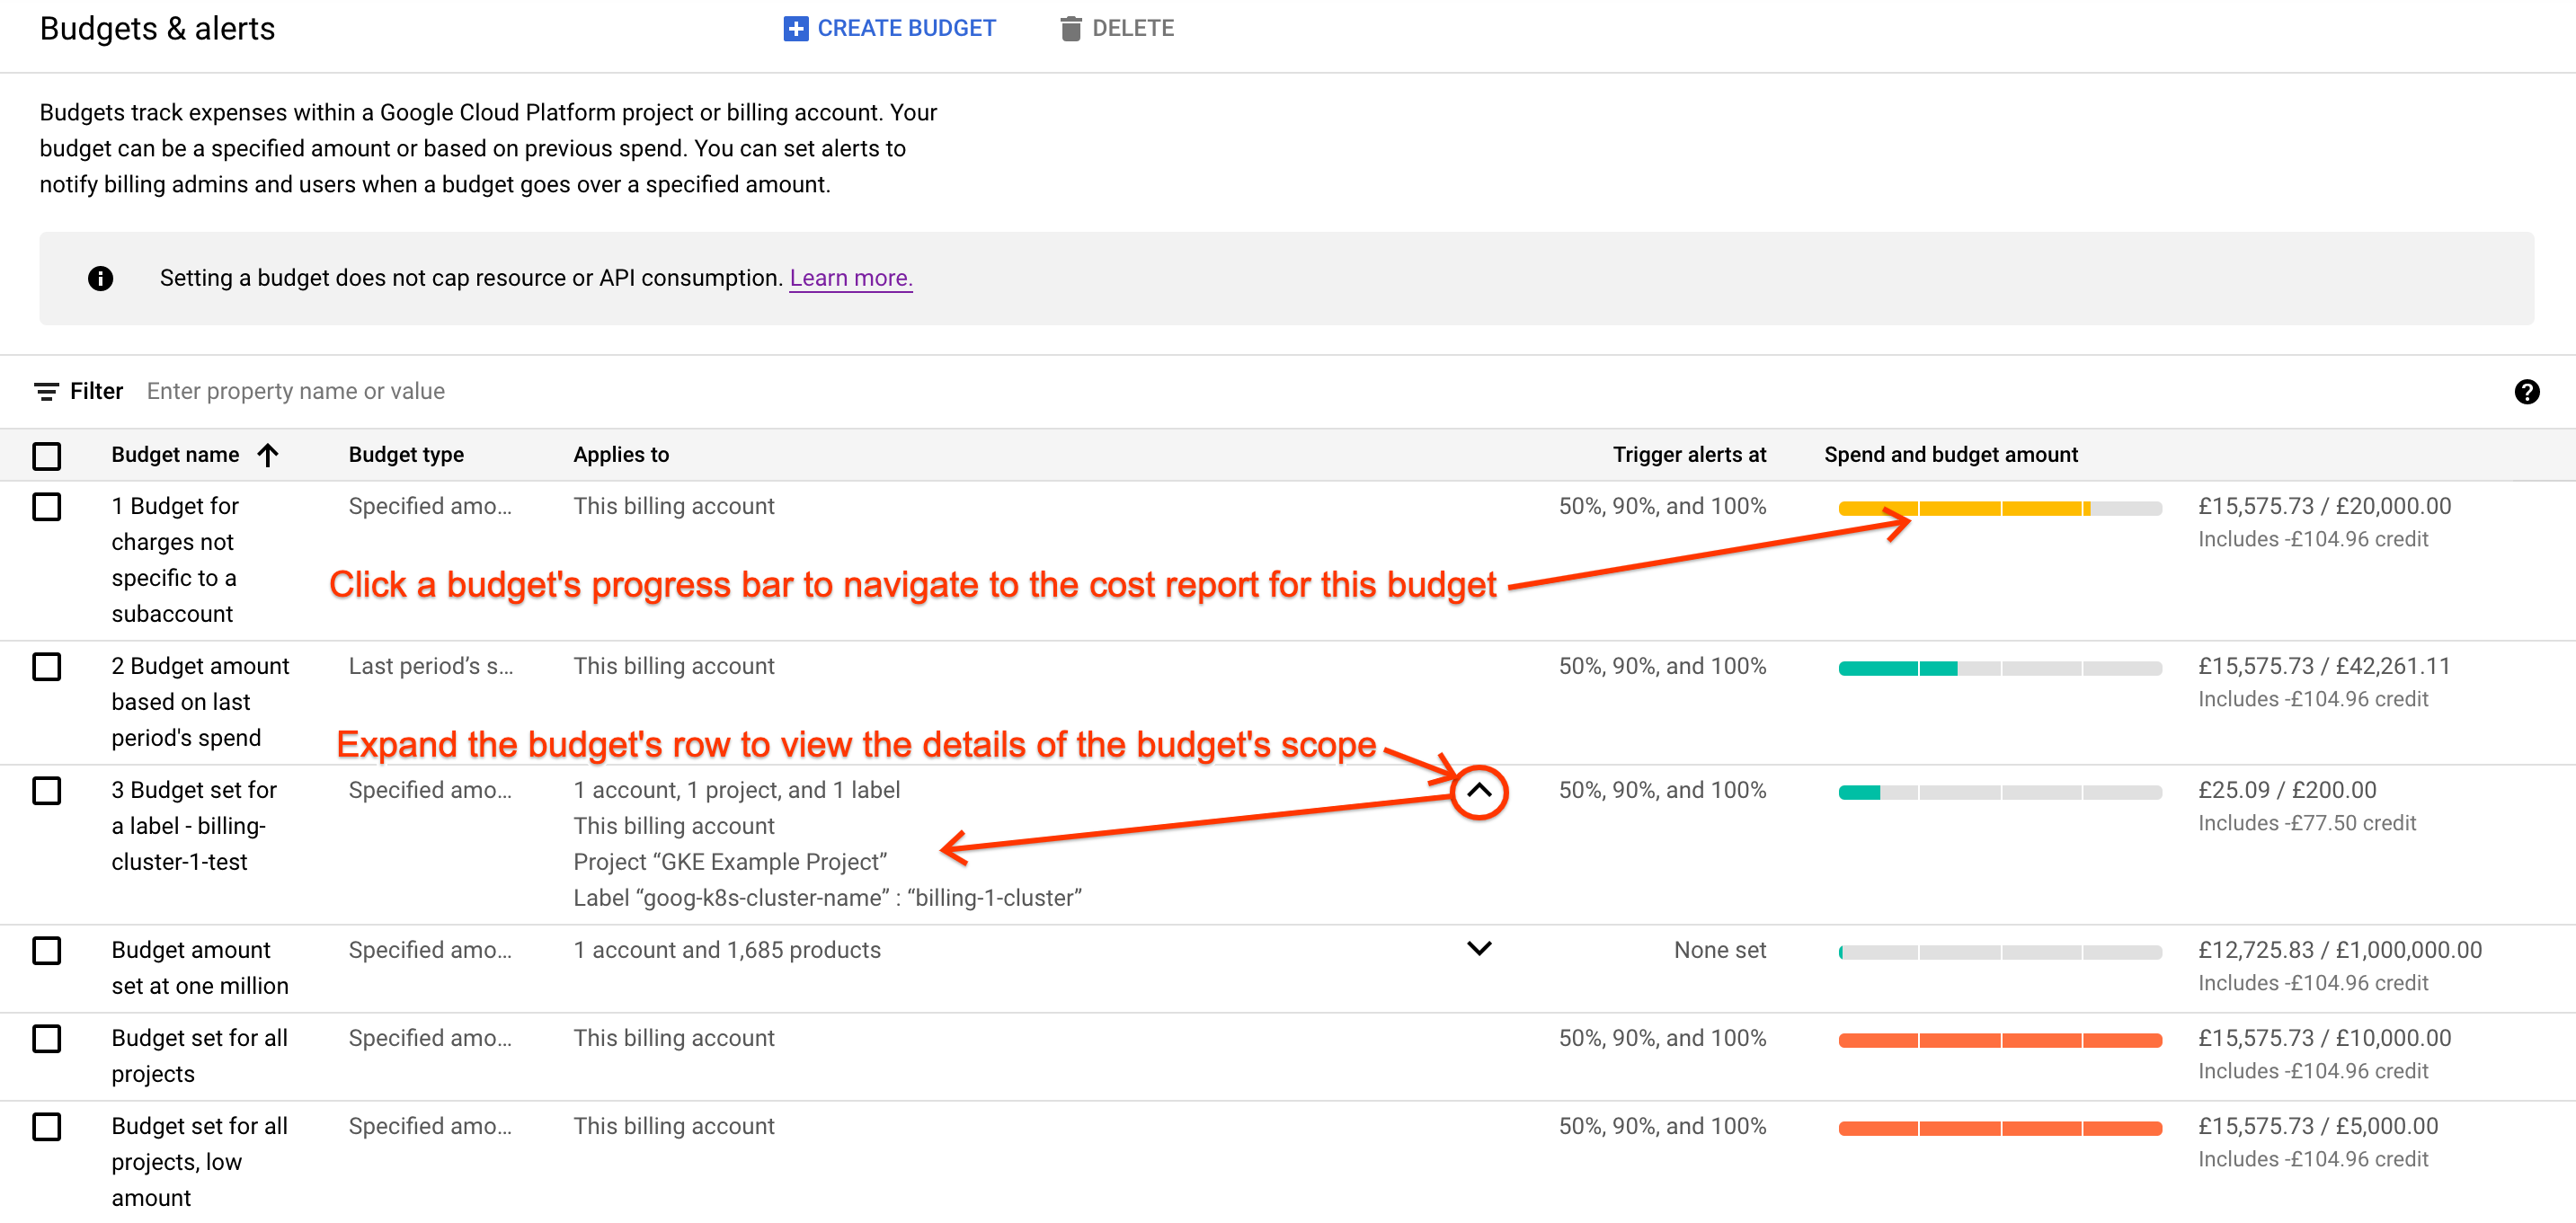 Example of the Budgets & alerts page accessible in the     Google Cloud Console. The page displays a list of budgets in a tabular     format.